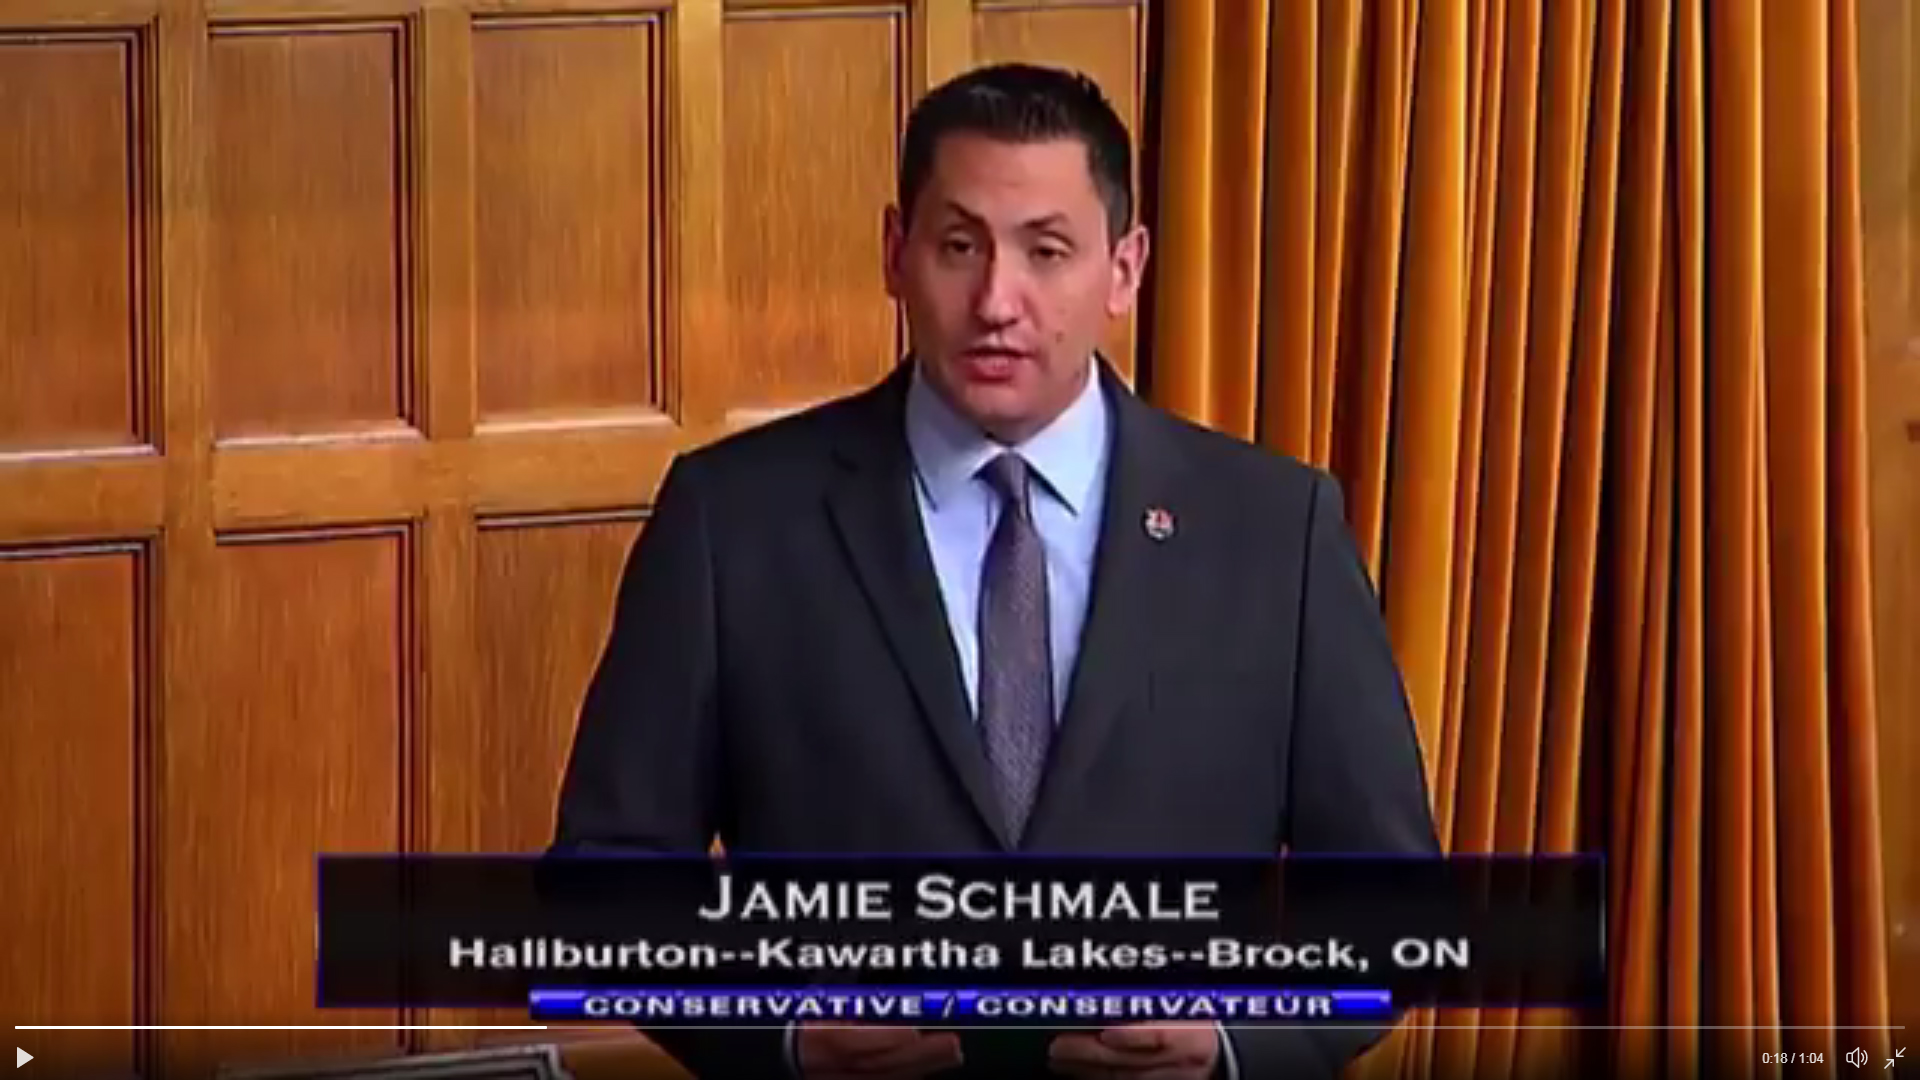 Haliburton-Kawartha Lakes-Brock Member of Parliament confirms 2019 candidacy